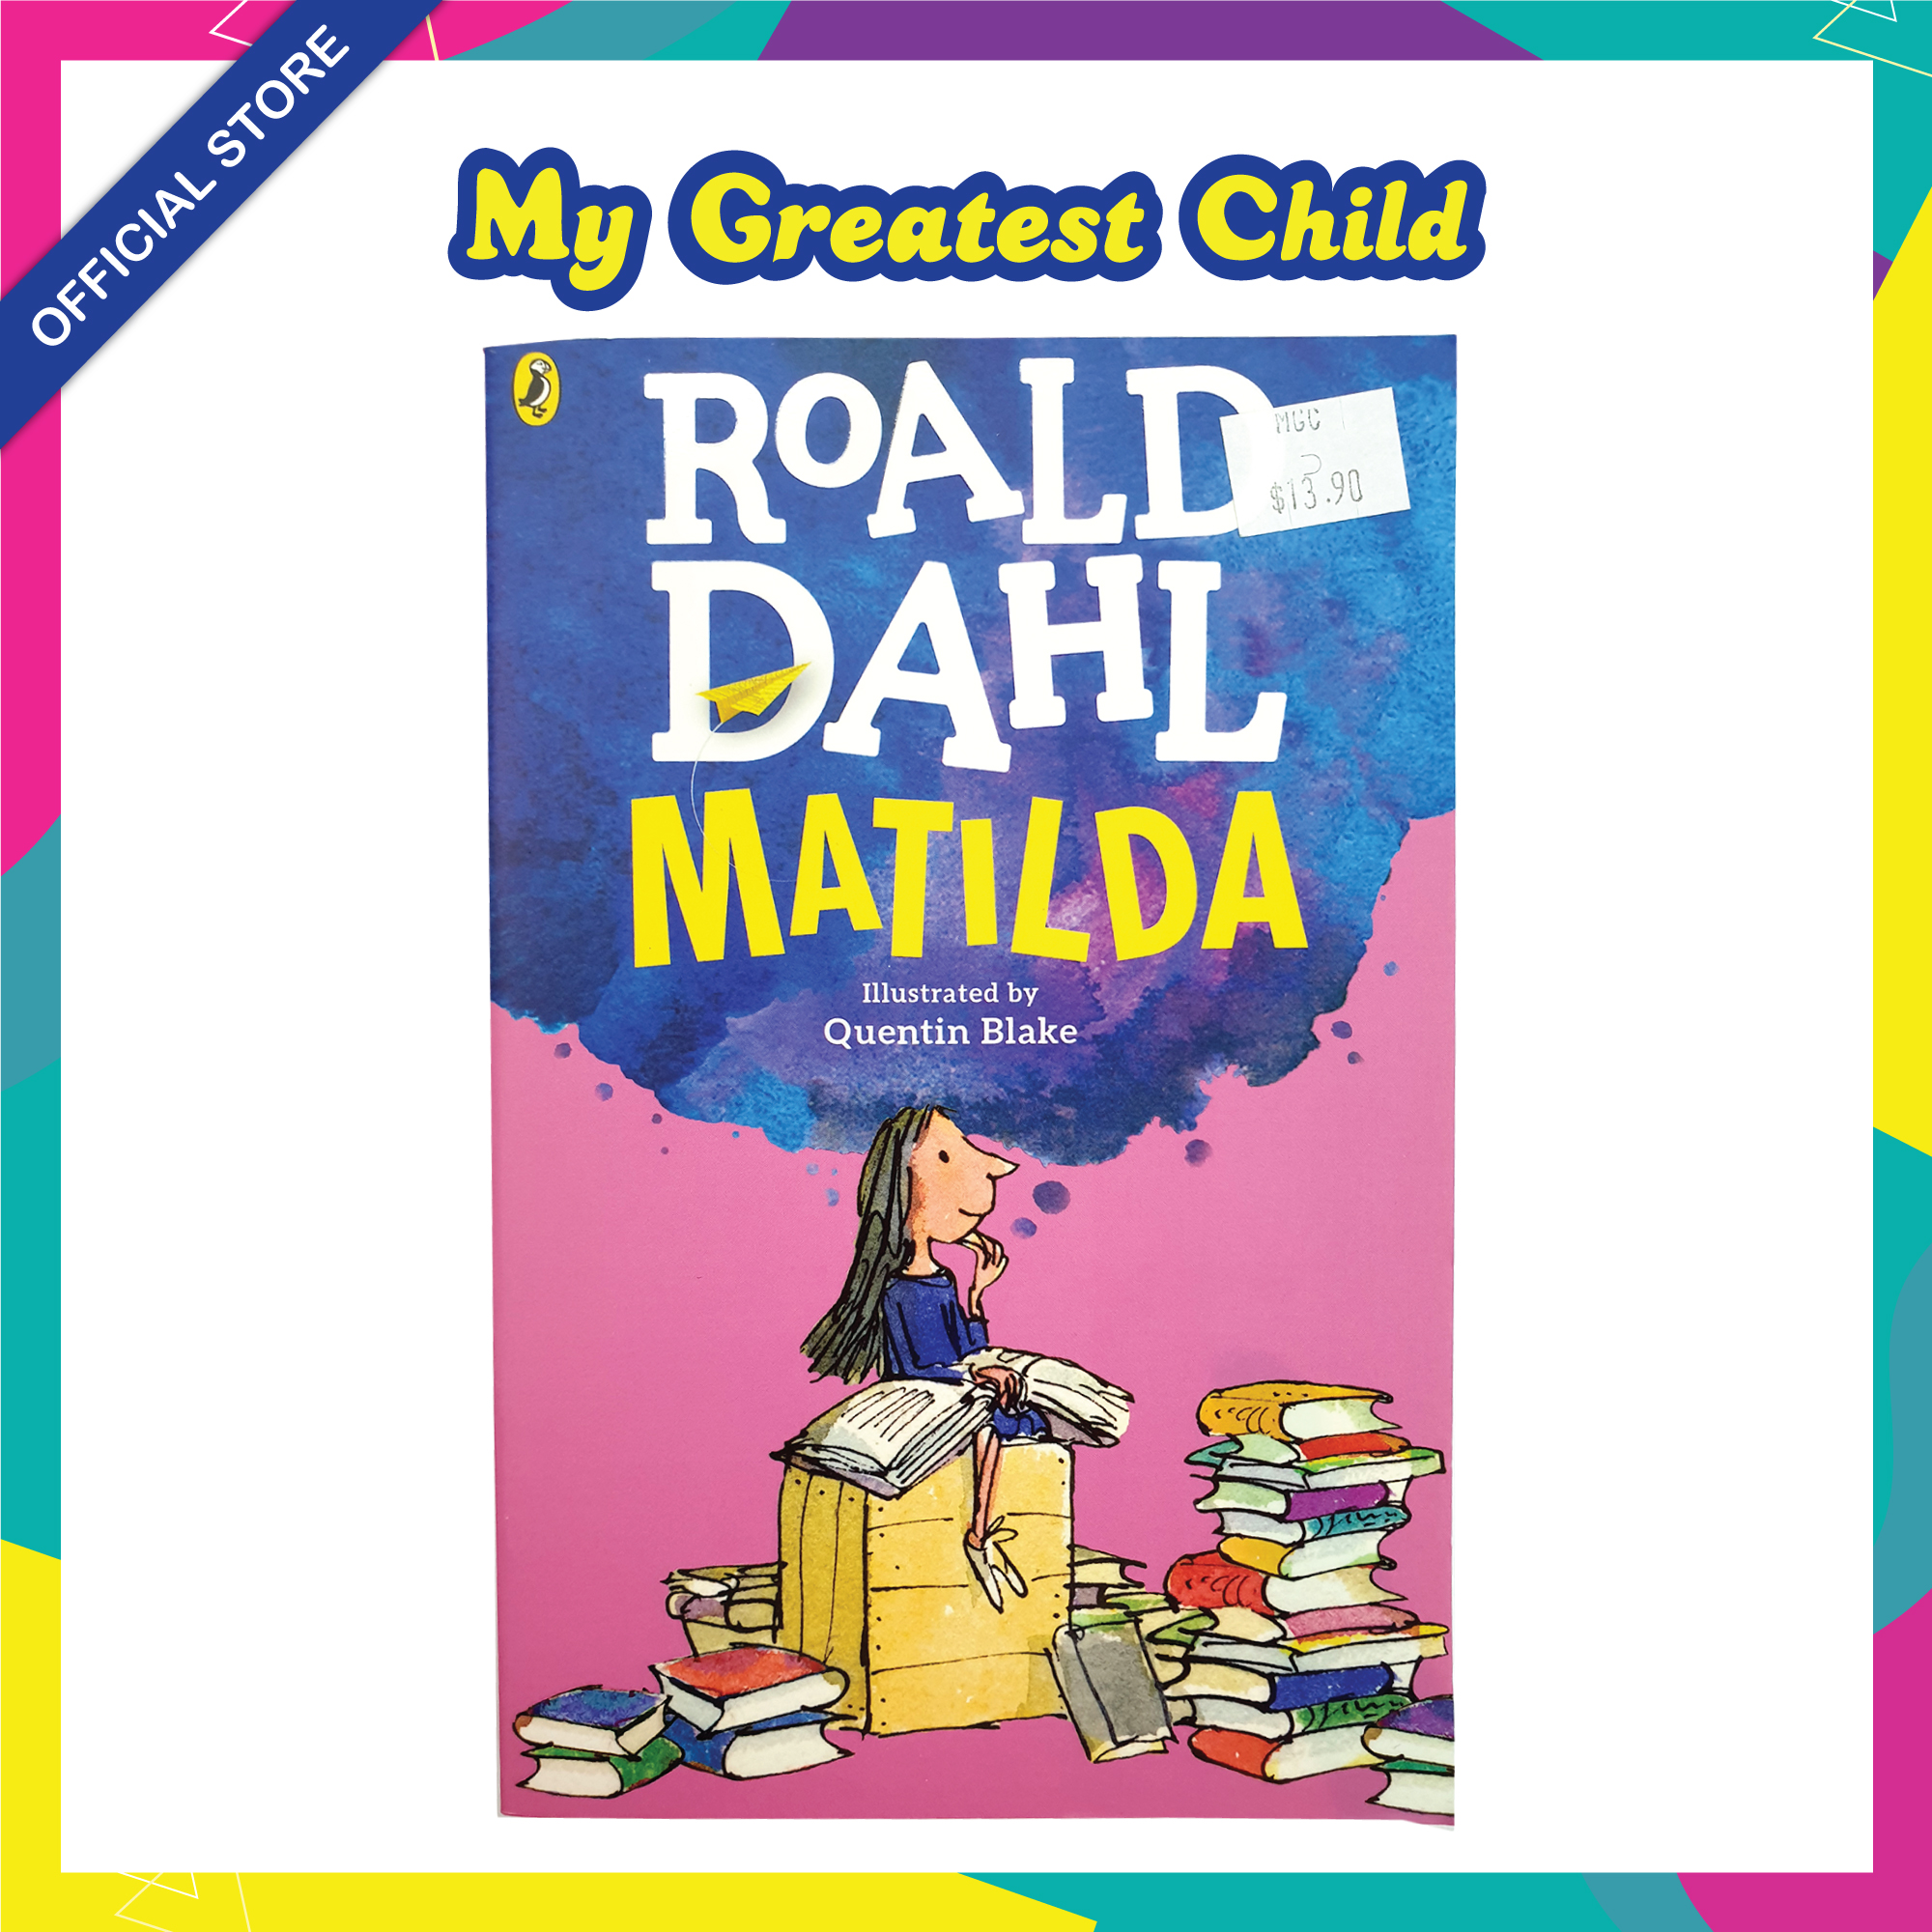 Matilda - Roald Dahl English Paperback Childrens Book (For Ages 7+)